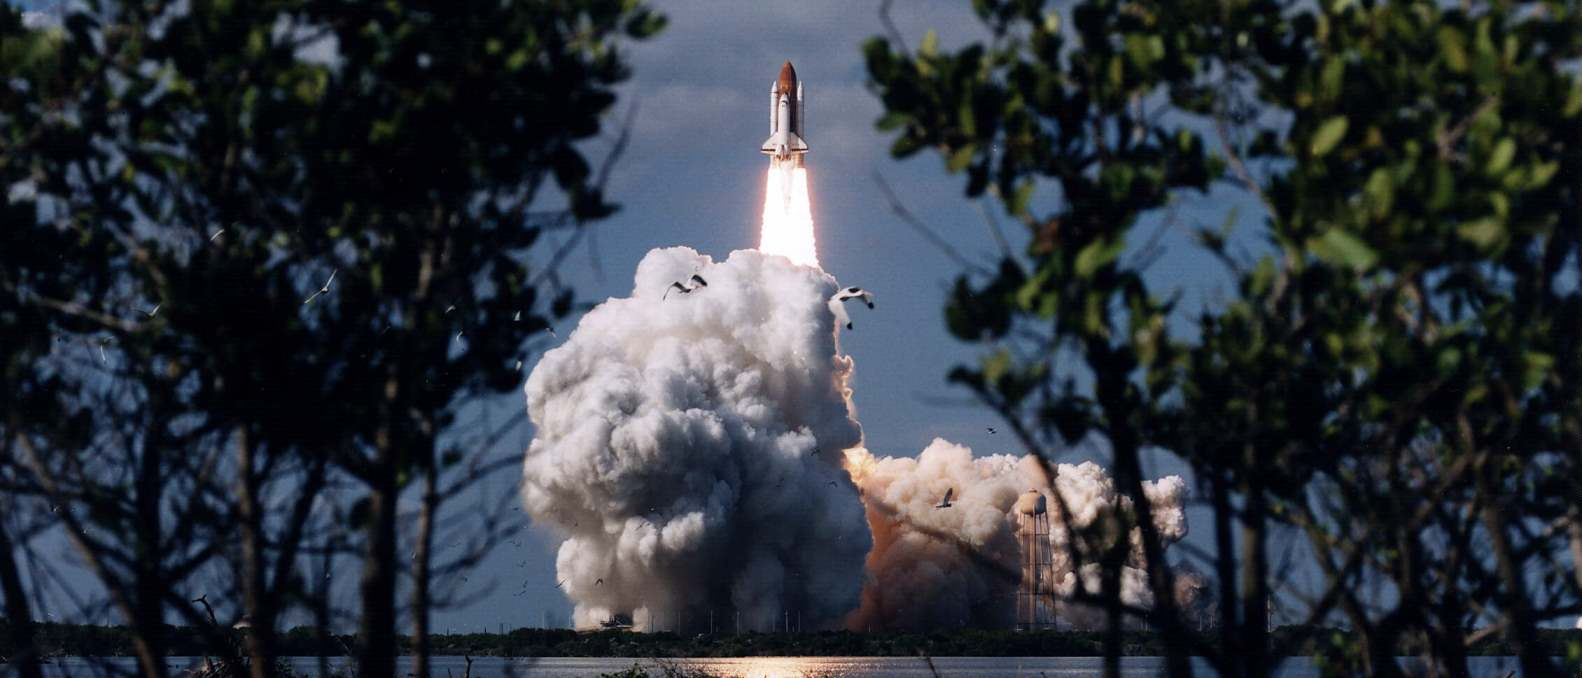 Space Shuttle Columbia lifts off from NASA's Kennedy Space Center in Florida on mission STS-80 on Nov. 19, 1996. Photo Credit: NASA